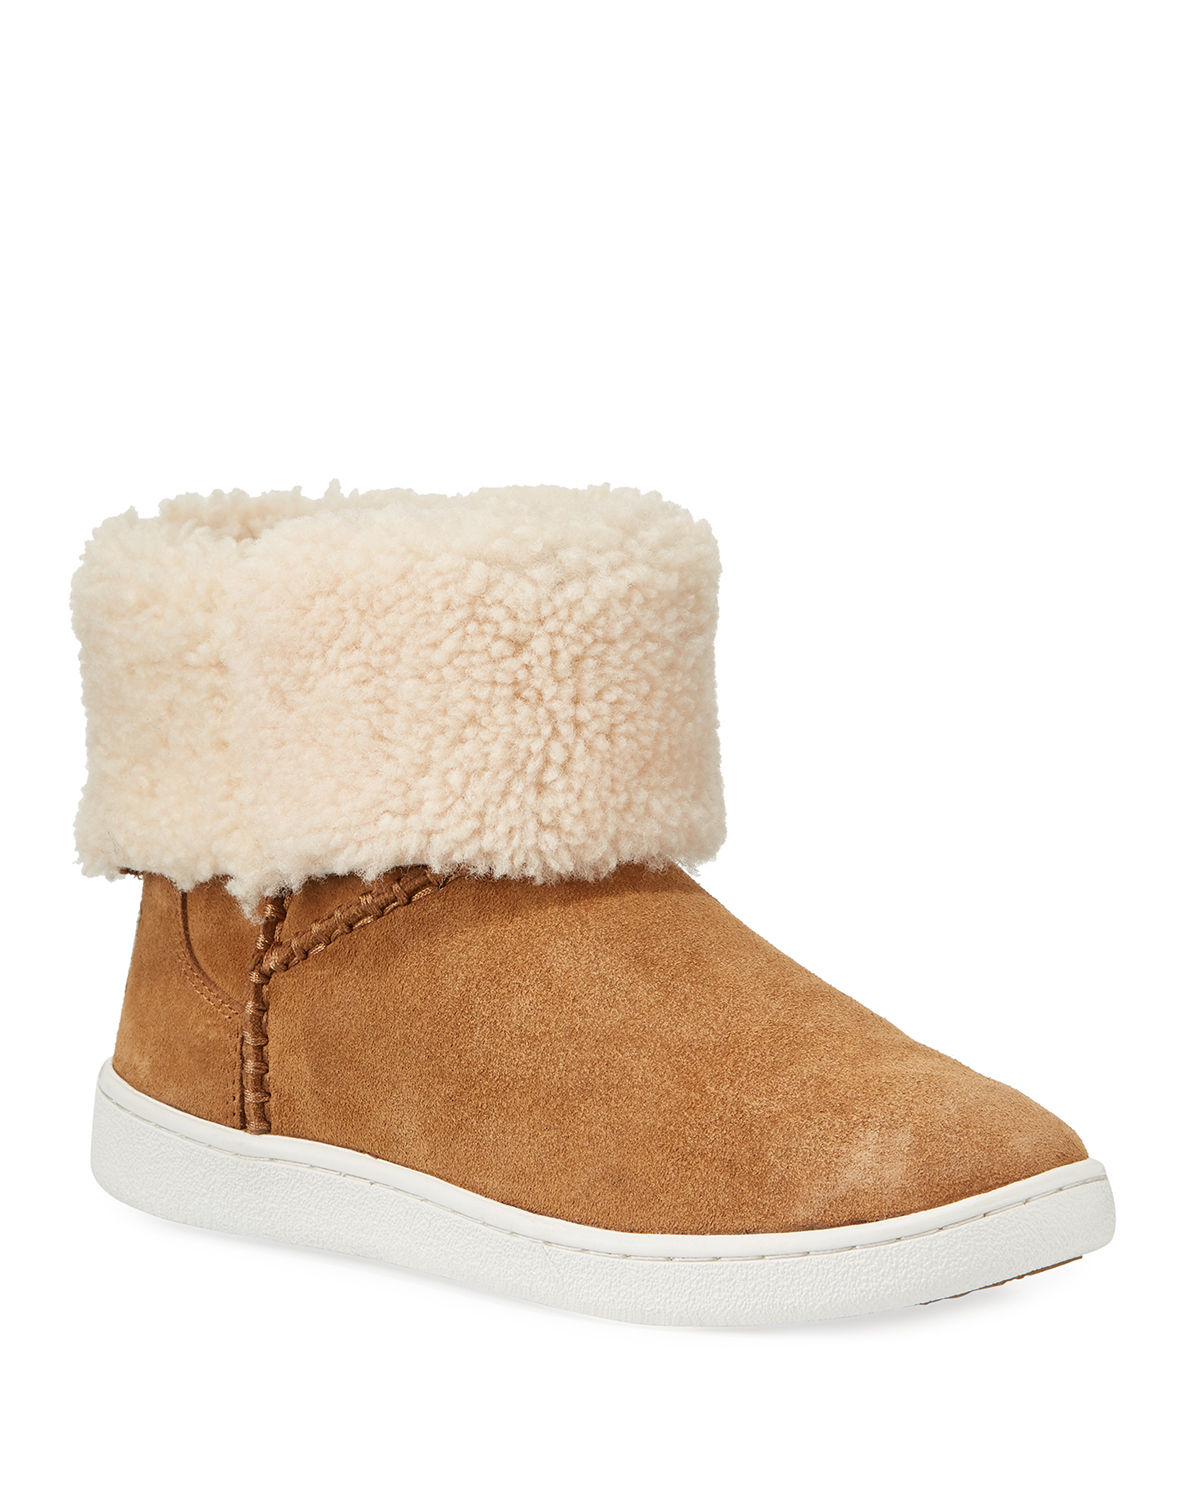 Mika Curly Shearling Bootie Sneakers